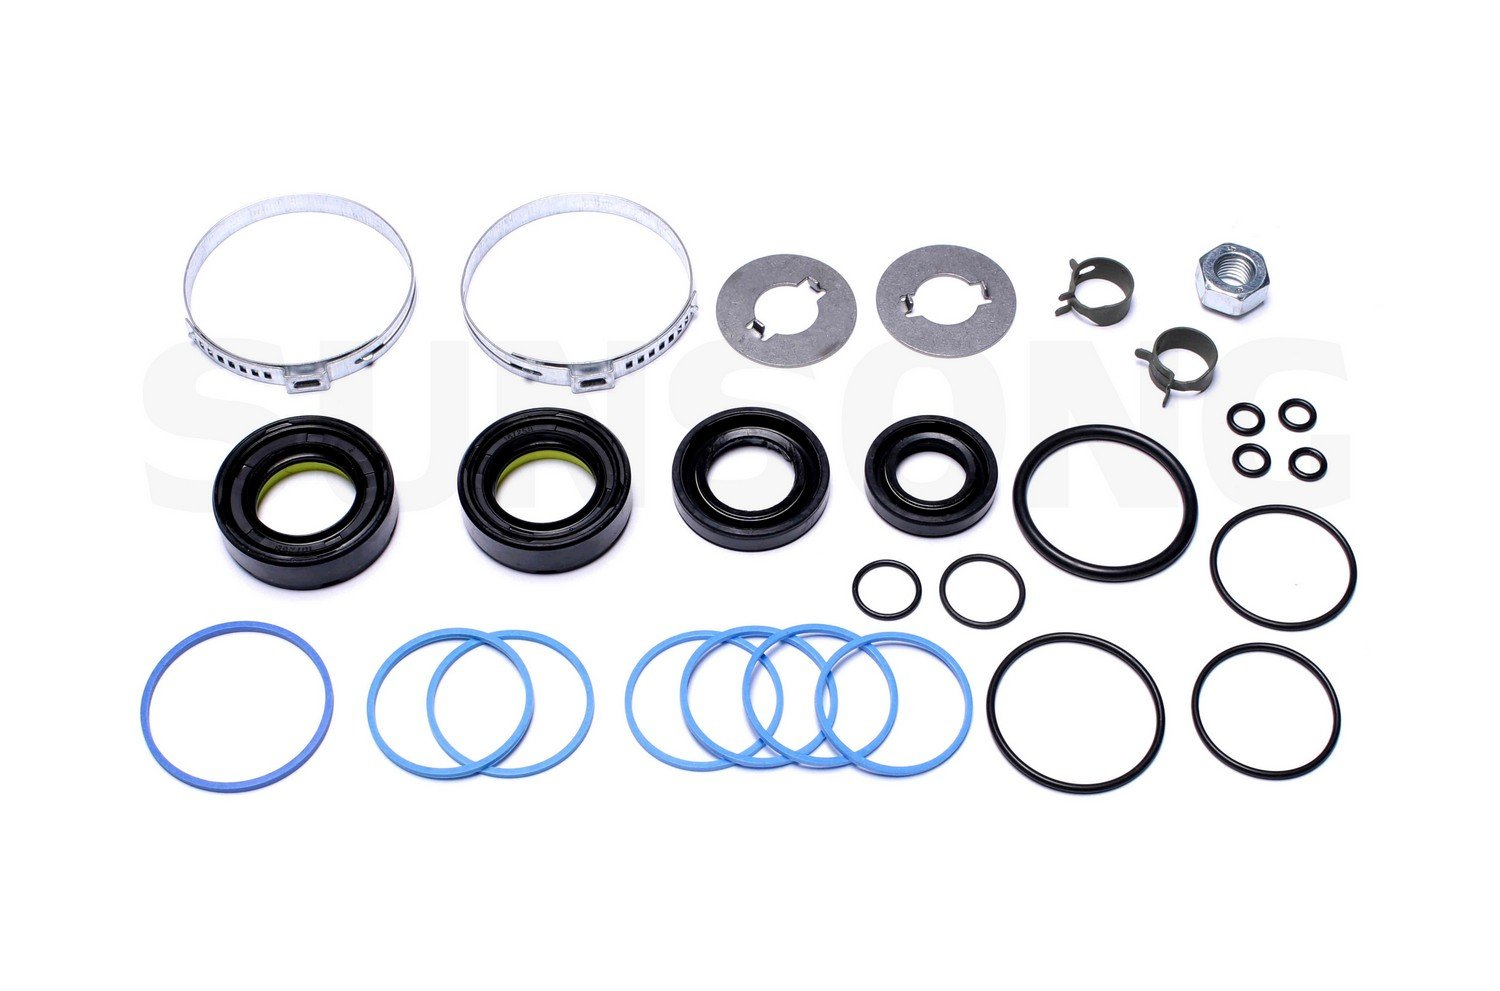 Sunsong 8401206 Rack and Pinion Seal Kit